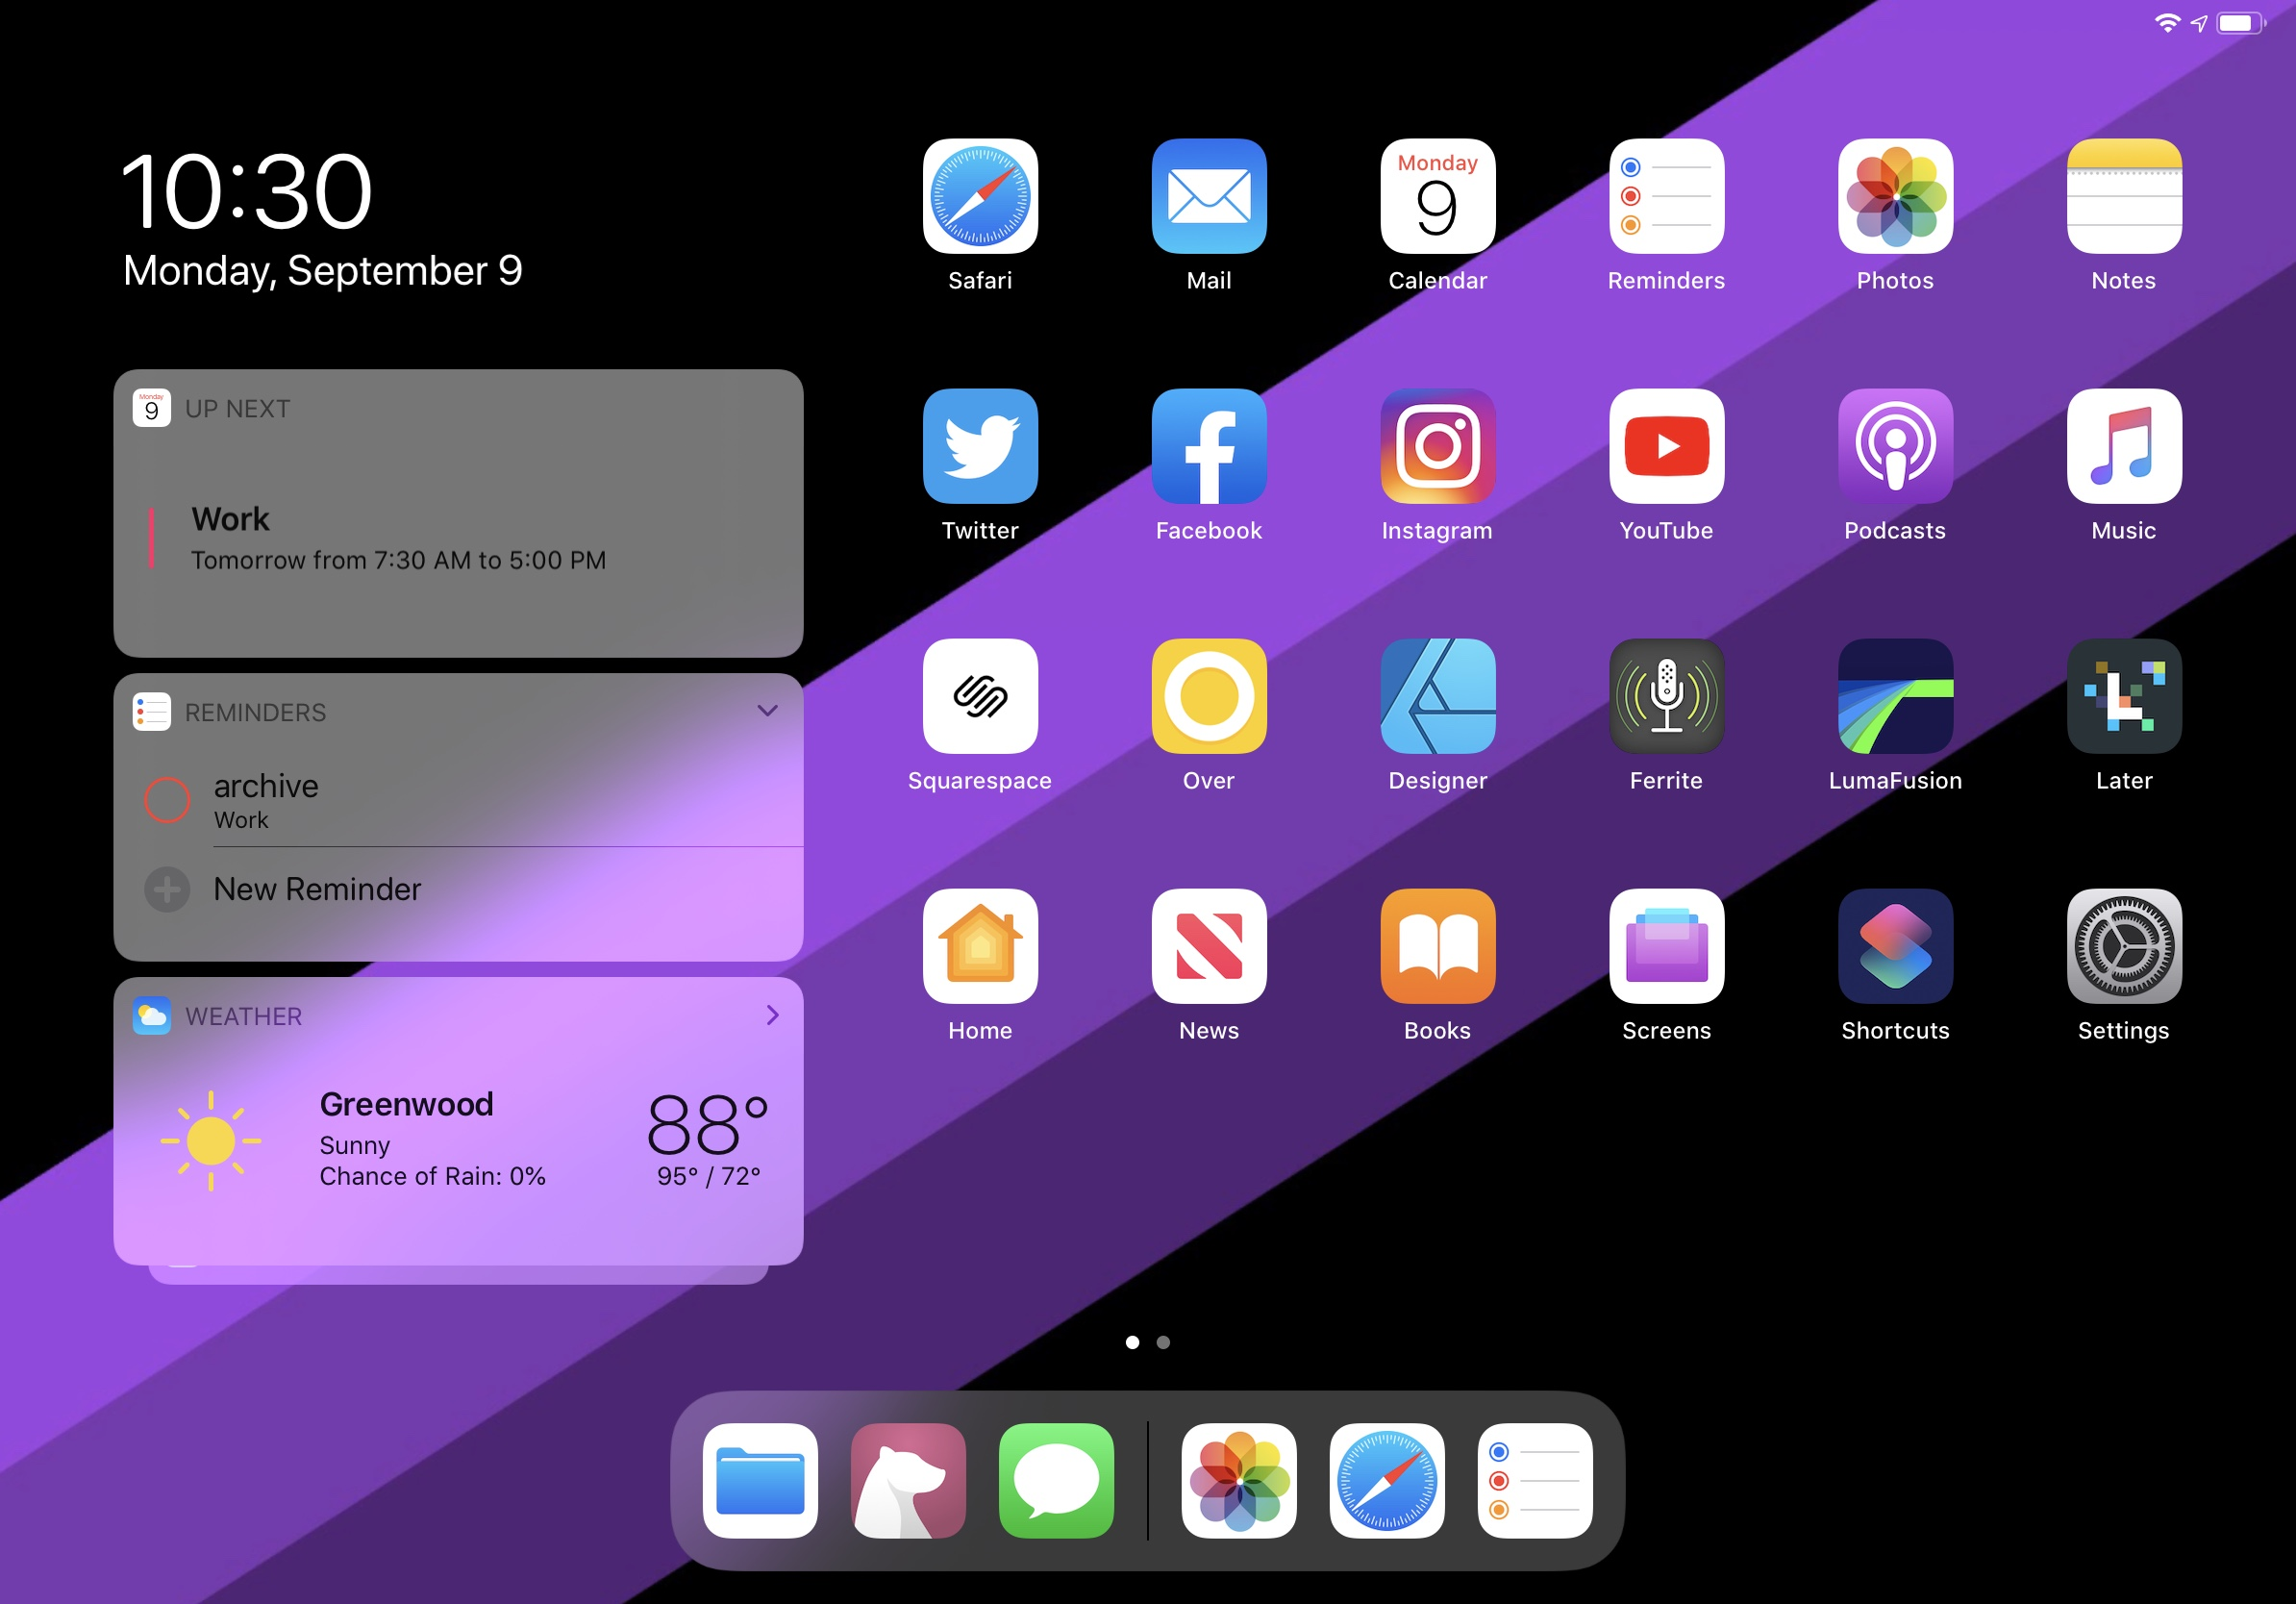 My iPad home screen with iPadOS 13.